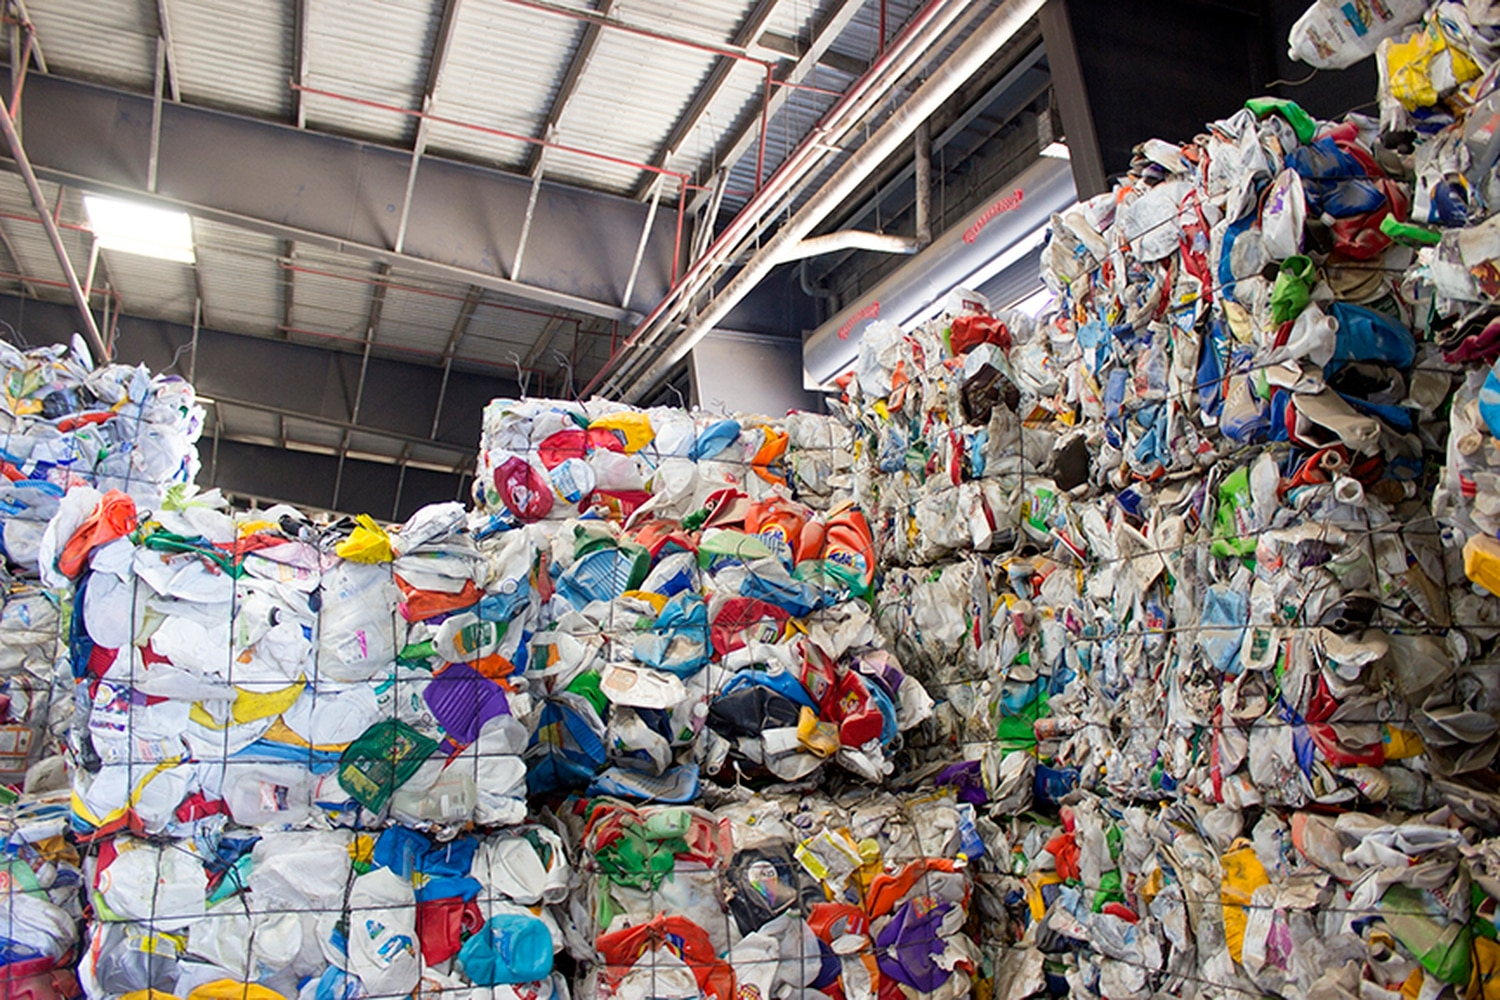 Santa Fe's recycling processing center makes bales of plastic for resale.